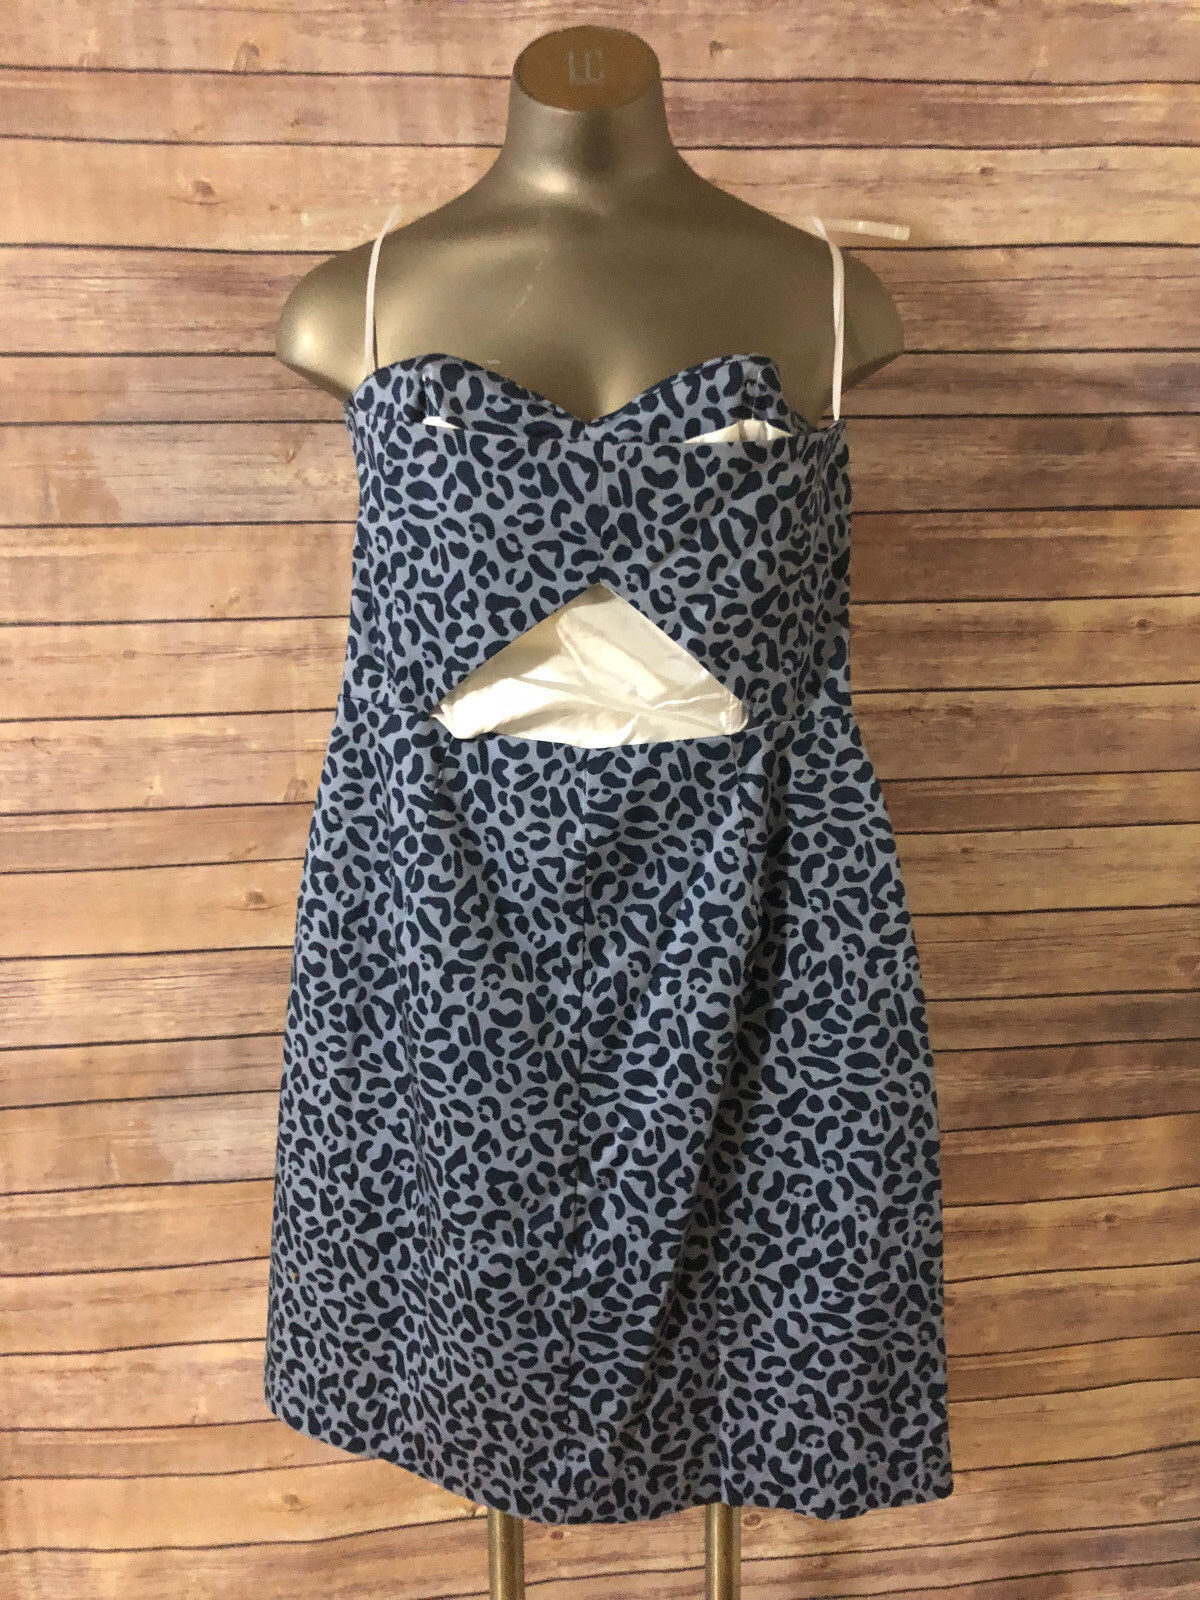 f8ce3fe74dc1 ... HUTCH ANTHROPOLOGIE STRAPLESS DRESS SIZE 6 blueE FORM FITTING FITTING  FITTING NWOT ff5205 ...